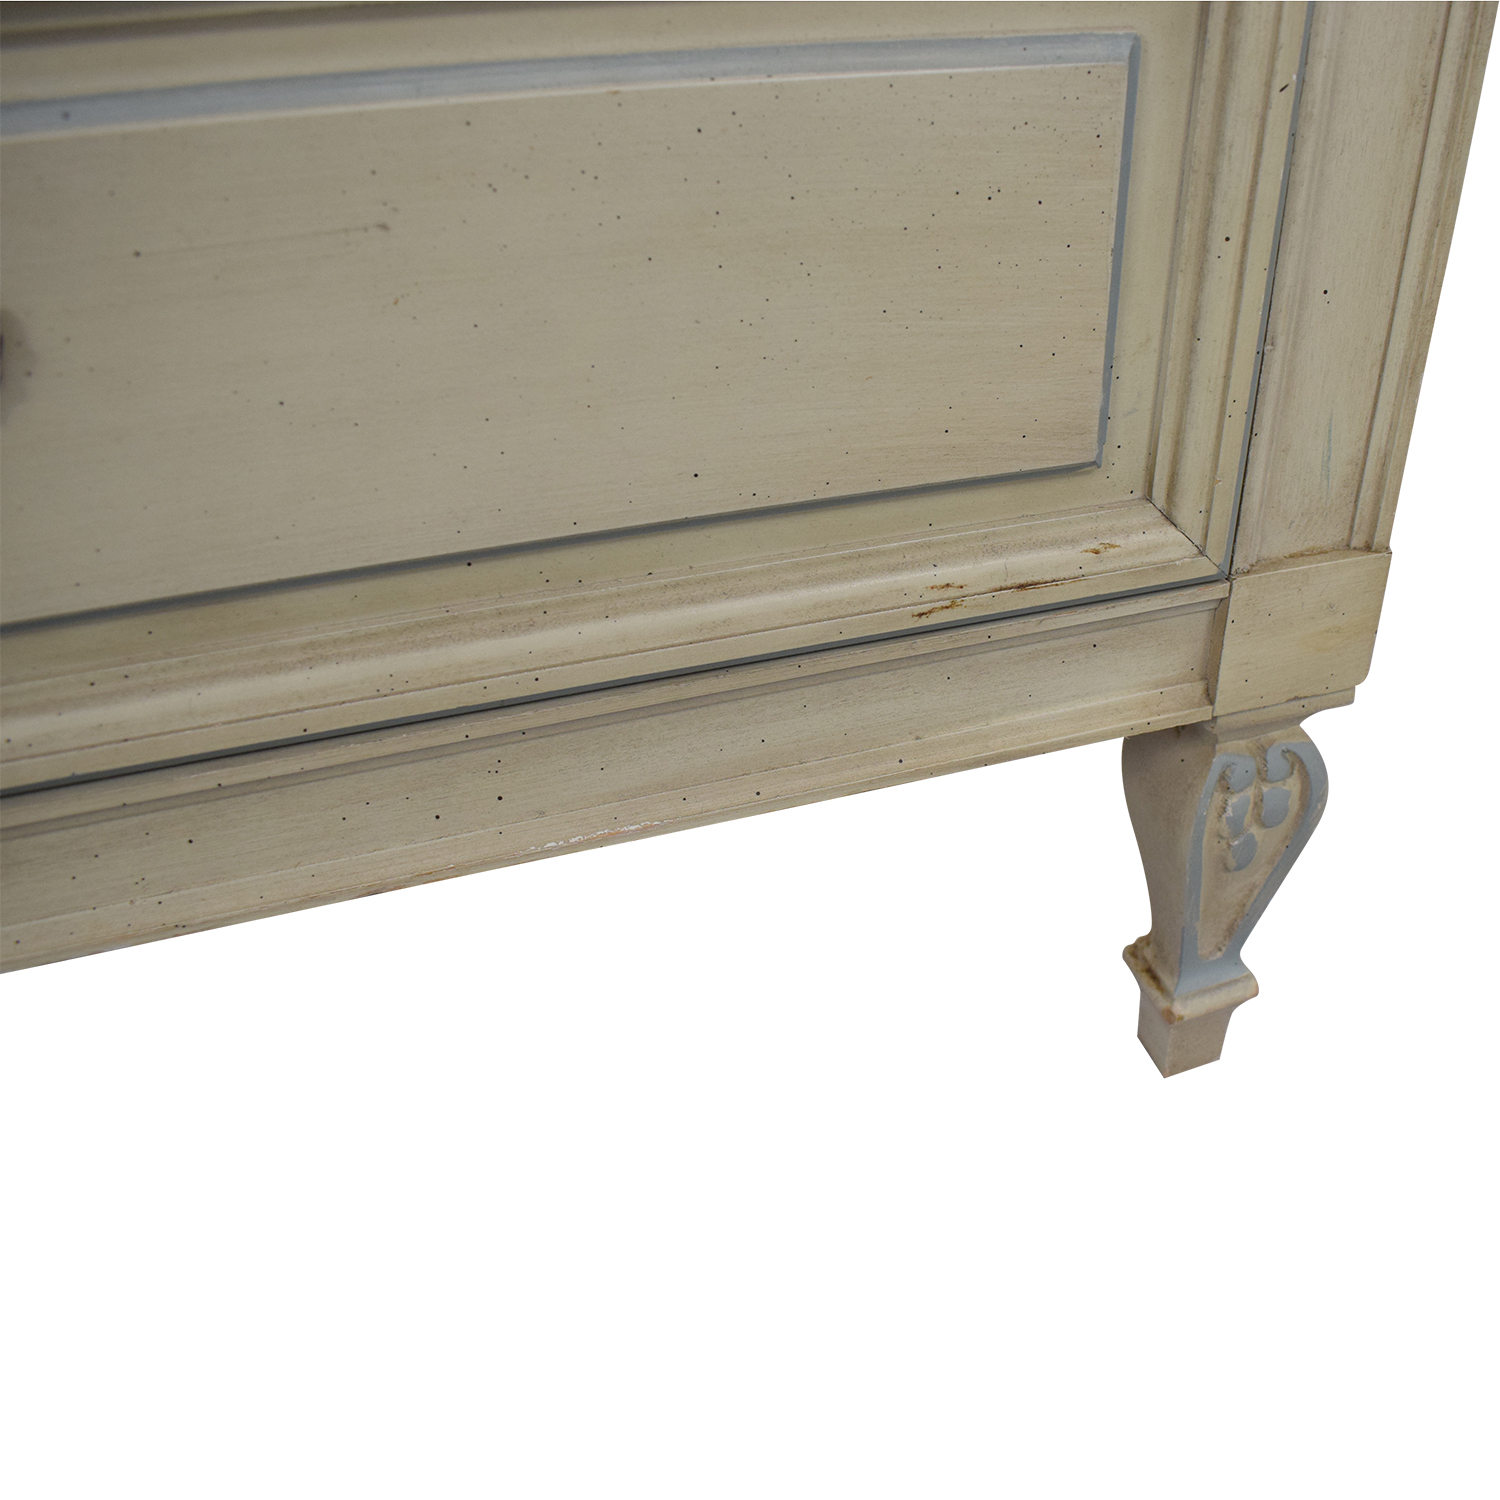 Dixie Furniture Company Dixie Furniture Chest Of Five Drawers on sale